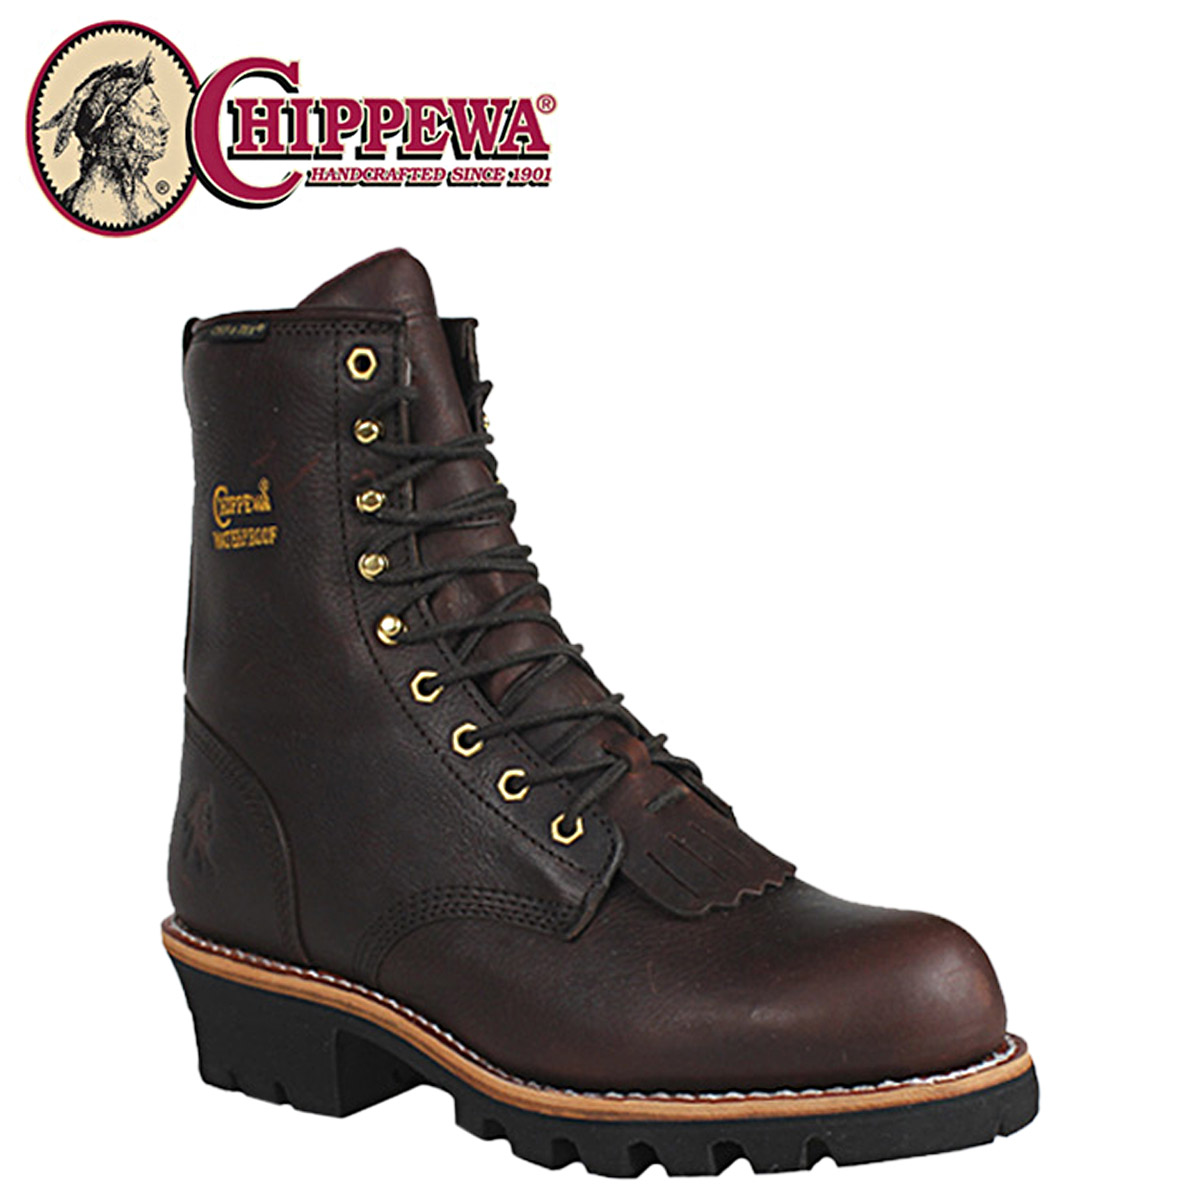 [SOLD OUT]chipewa CHIPPEWA工作长筒靴棕色73061 8 BRIAR INSULATED WATERPROOF LOGGER M怀斯W怀斯皮革人